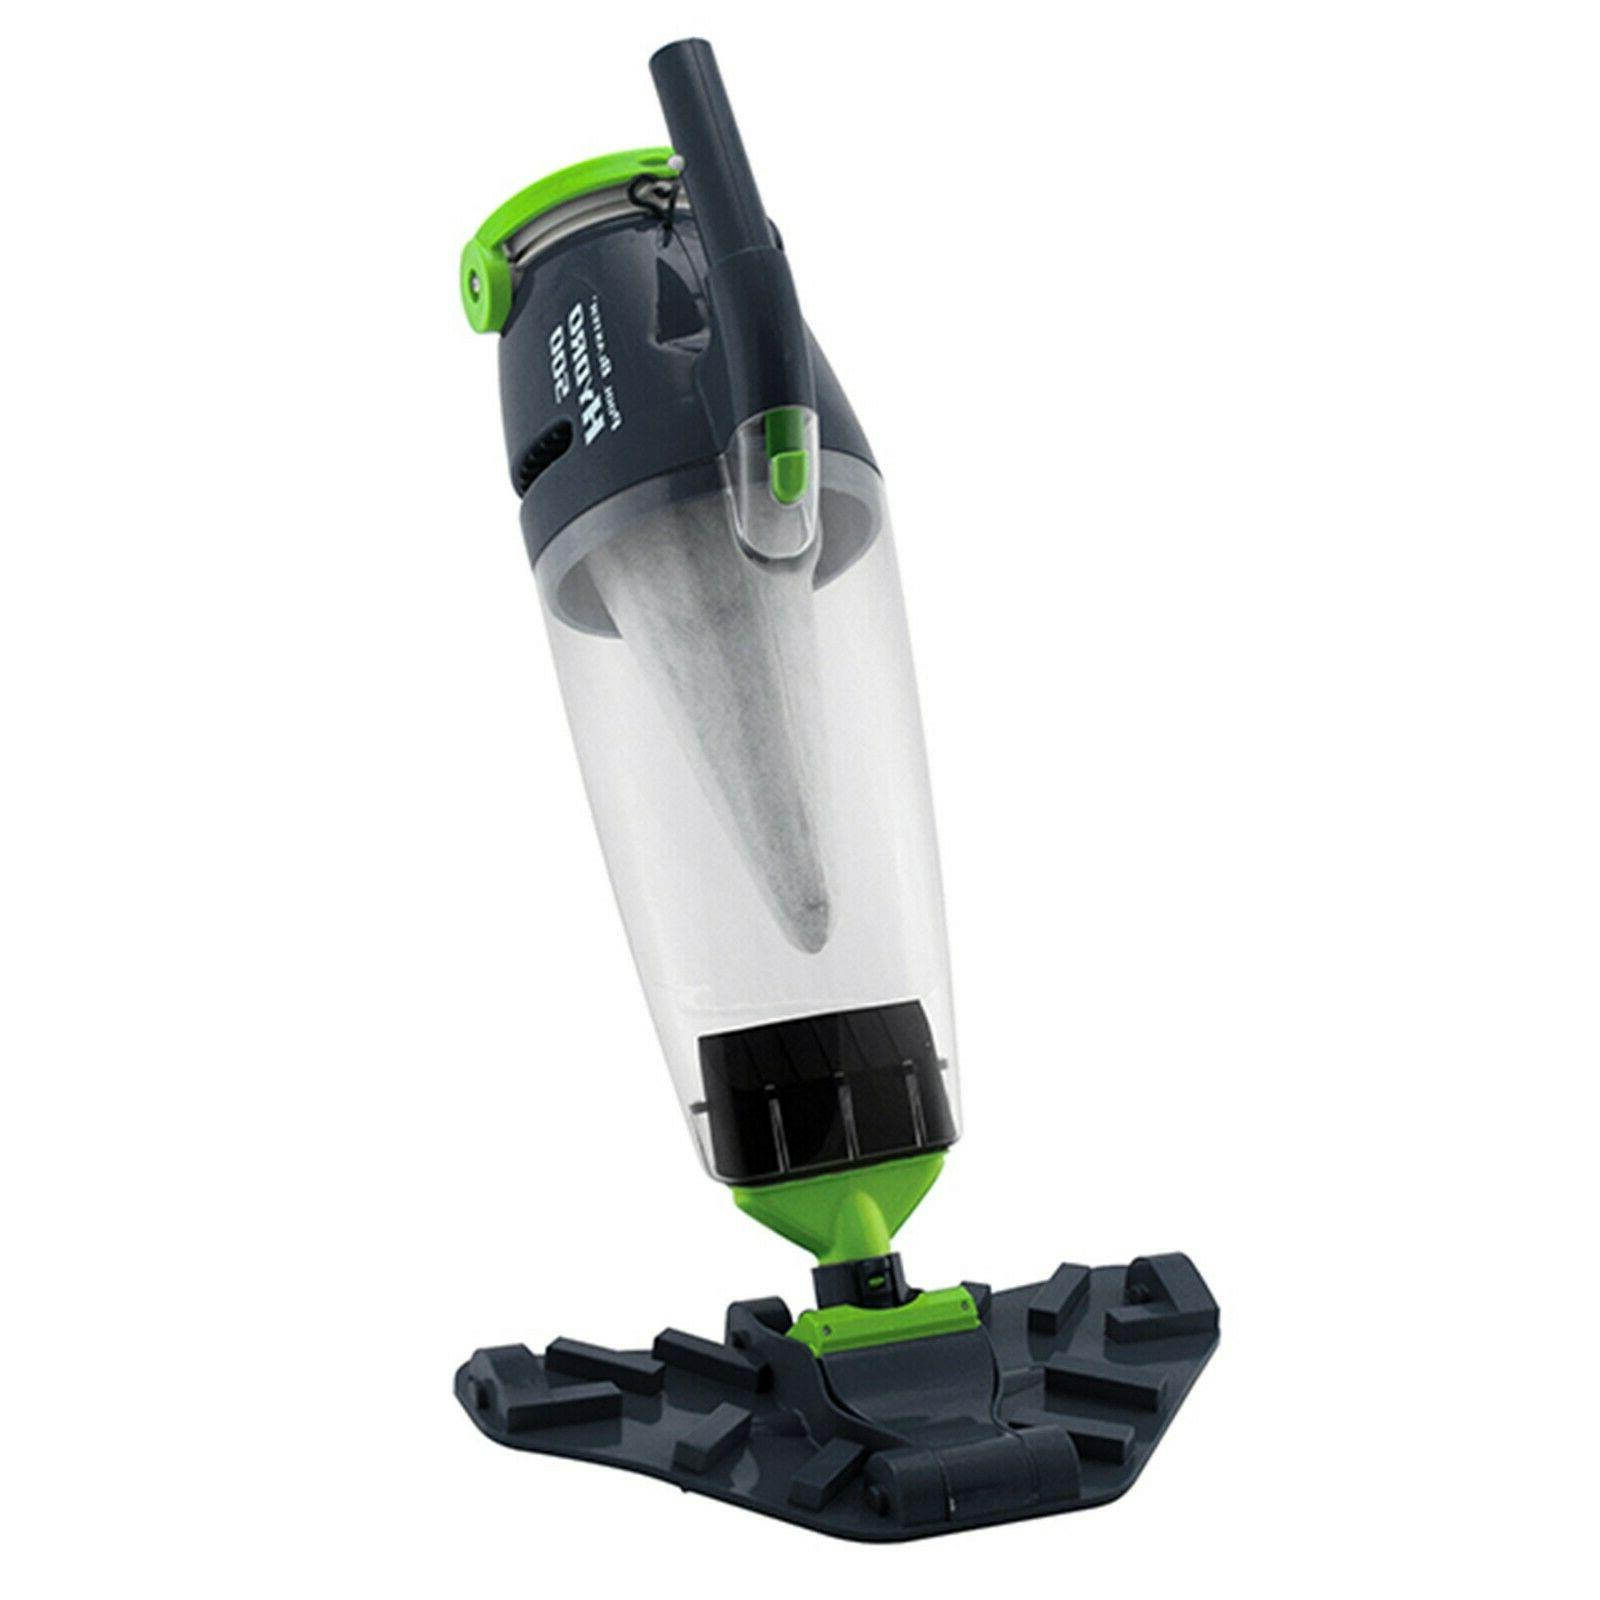 hydro broom 500 swimming pool cleaner